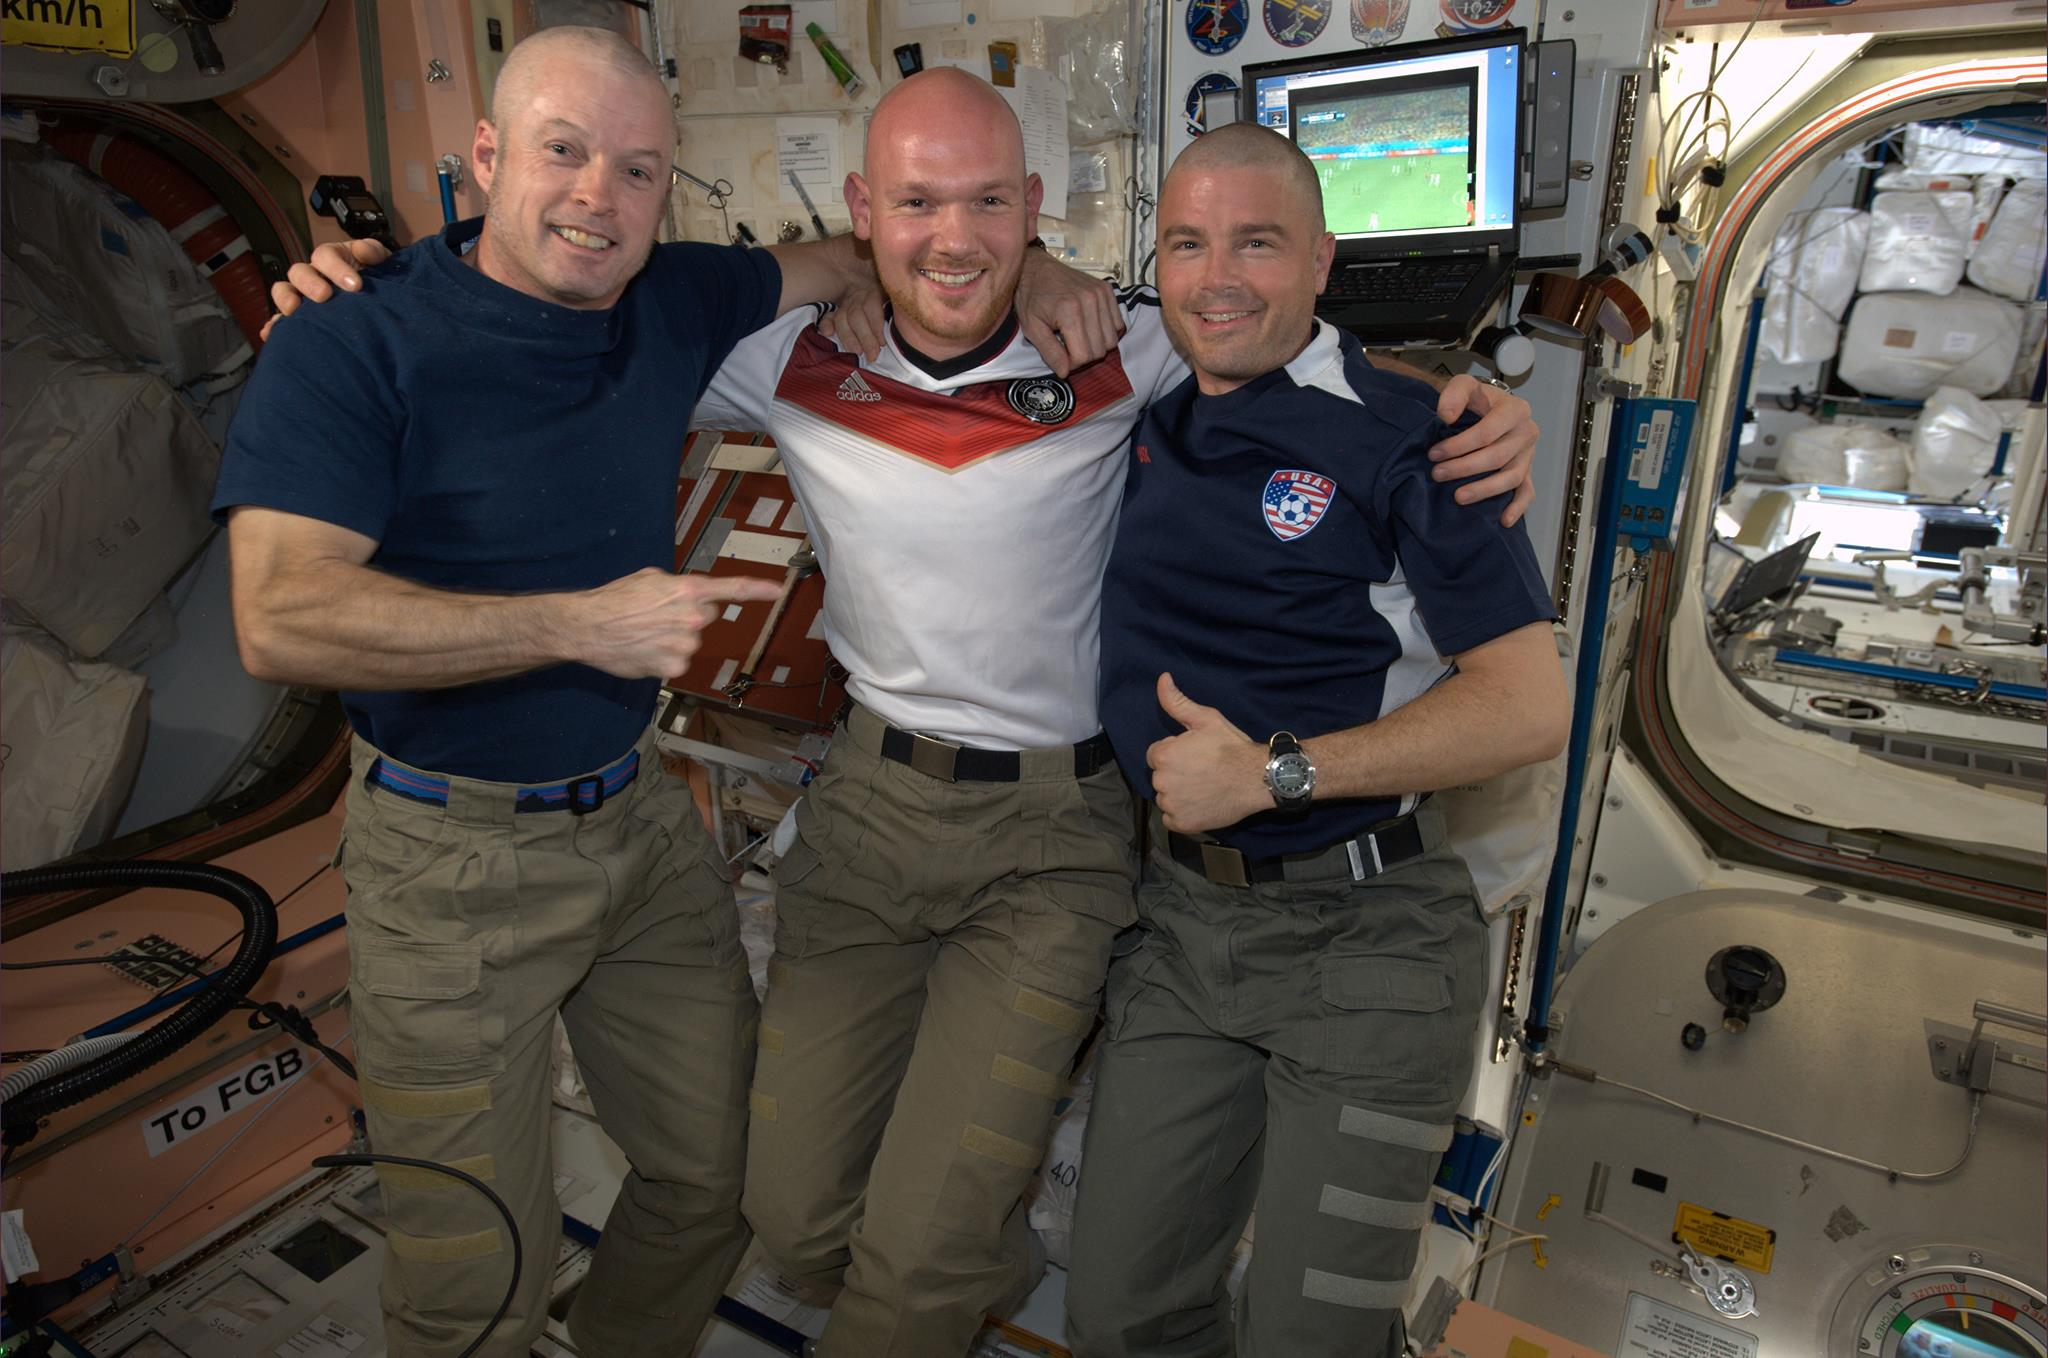 latest astronaut in space - photo #19